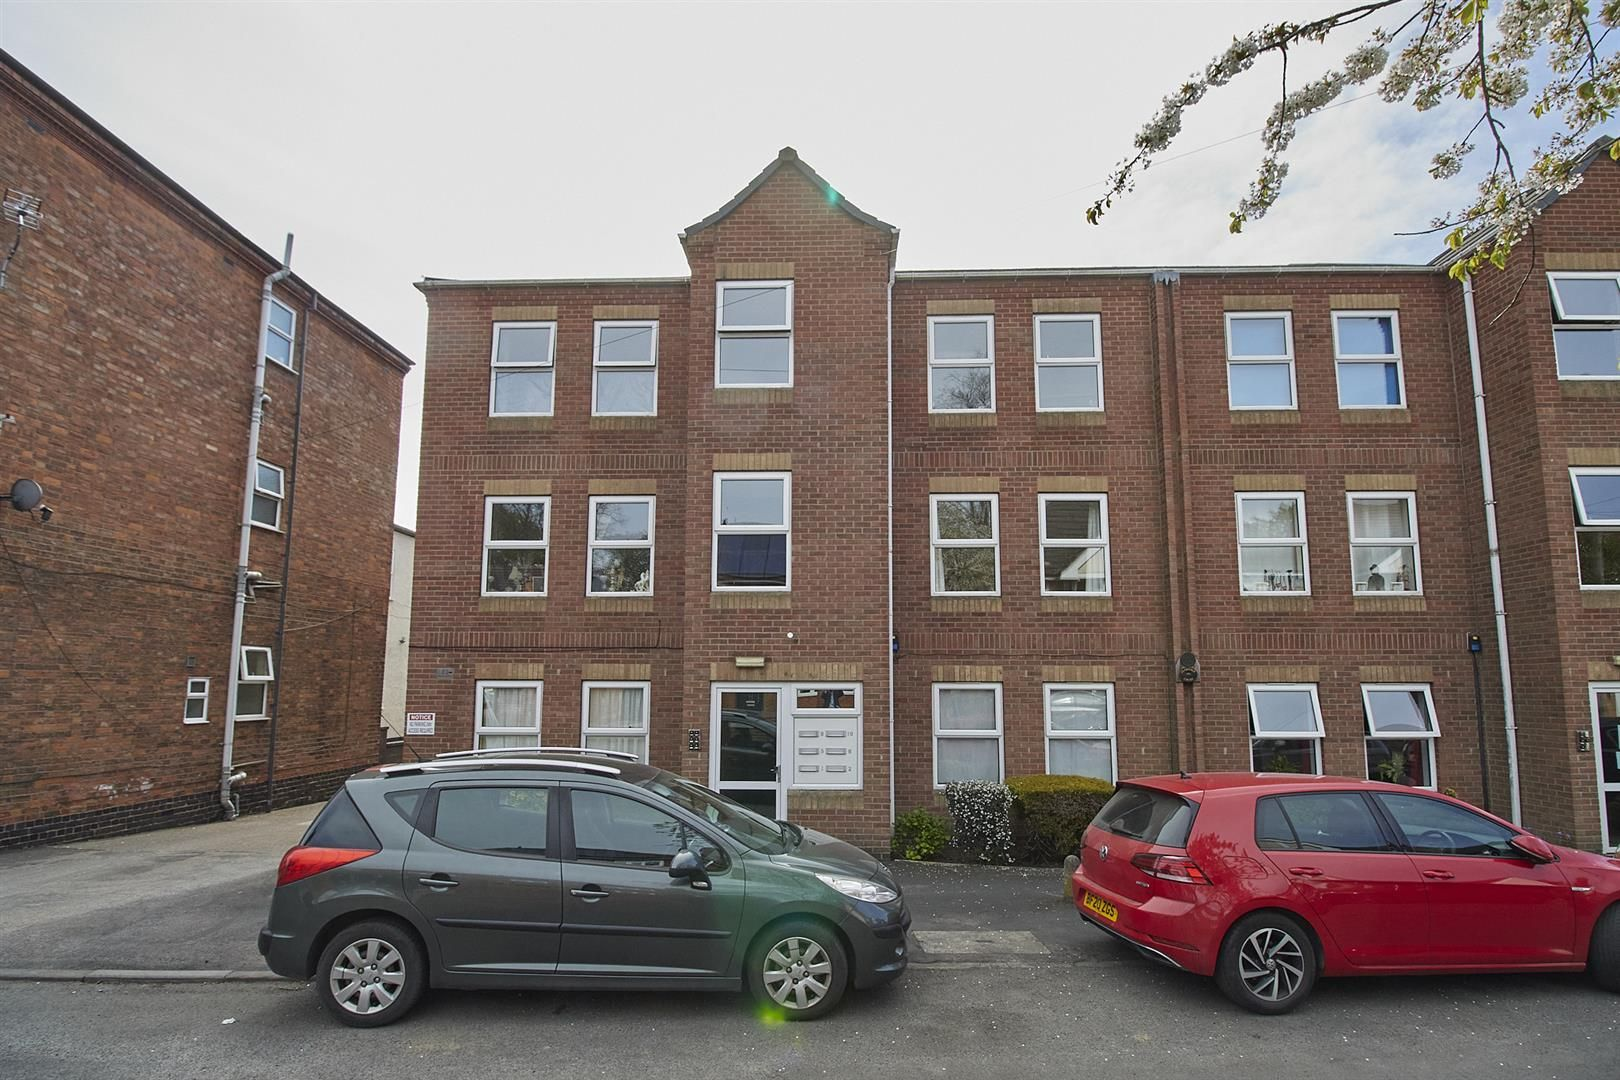 Property photo 1 of 7. Clarence Court, Hinckley  6.Jpg